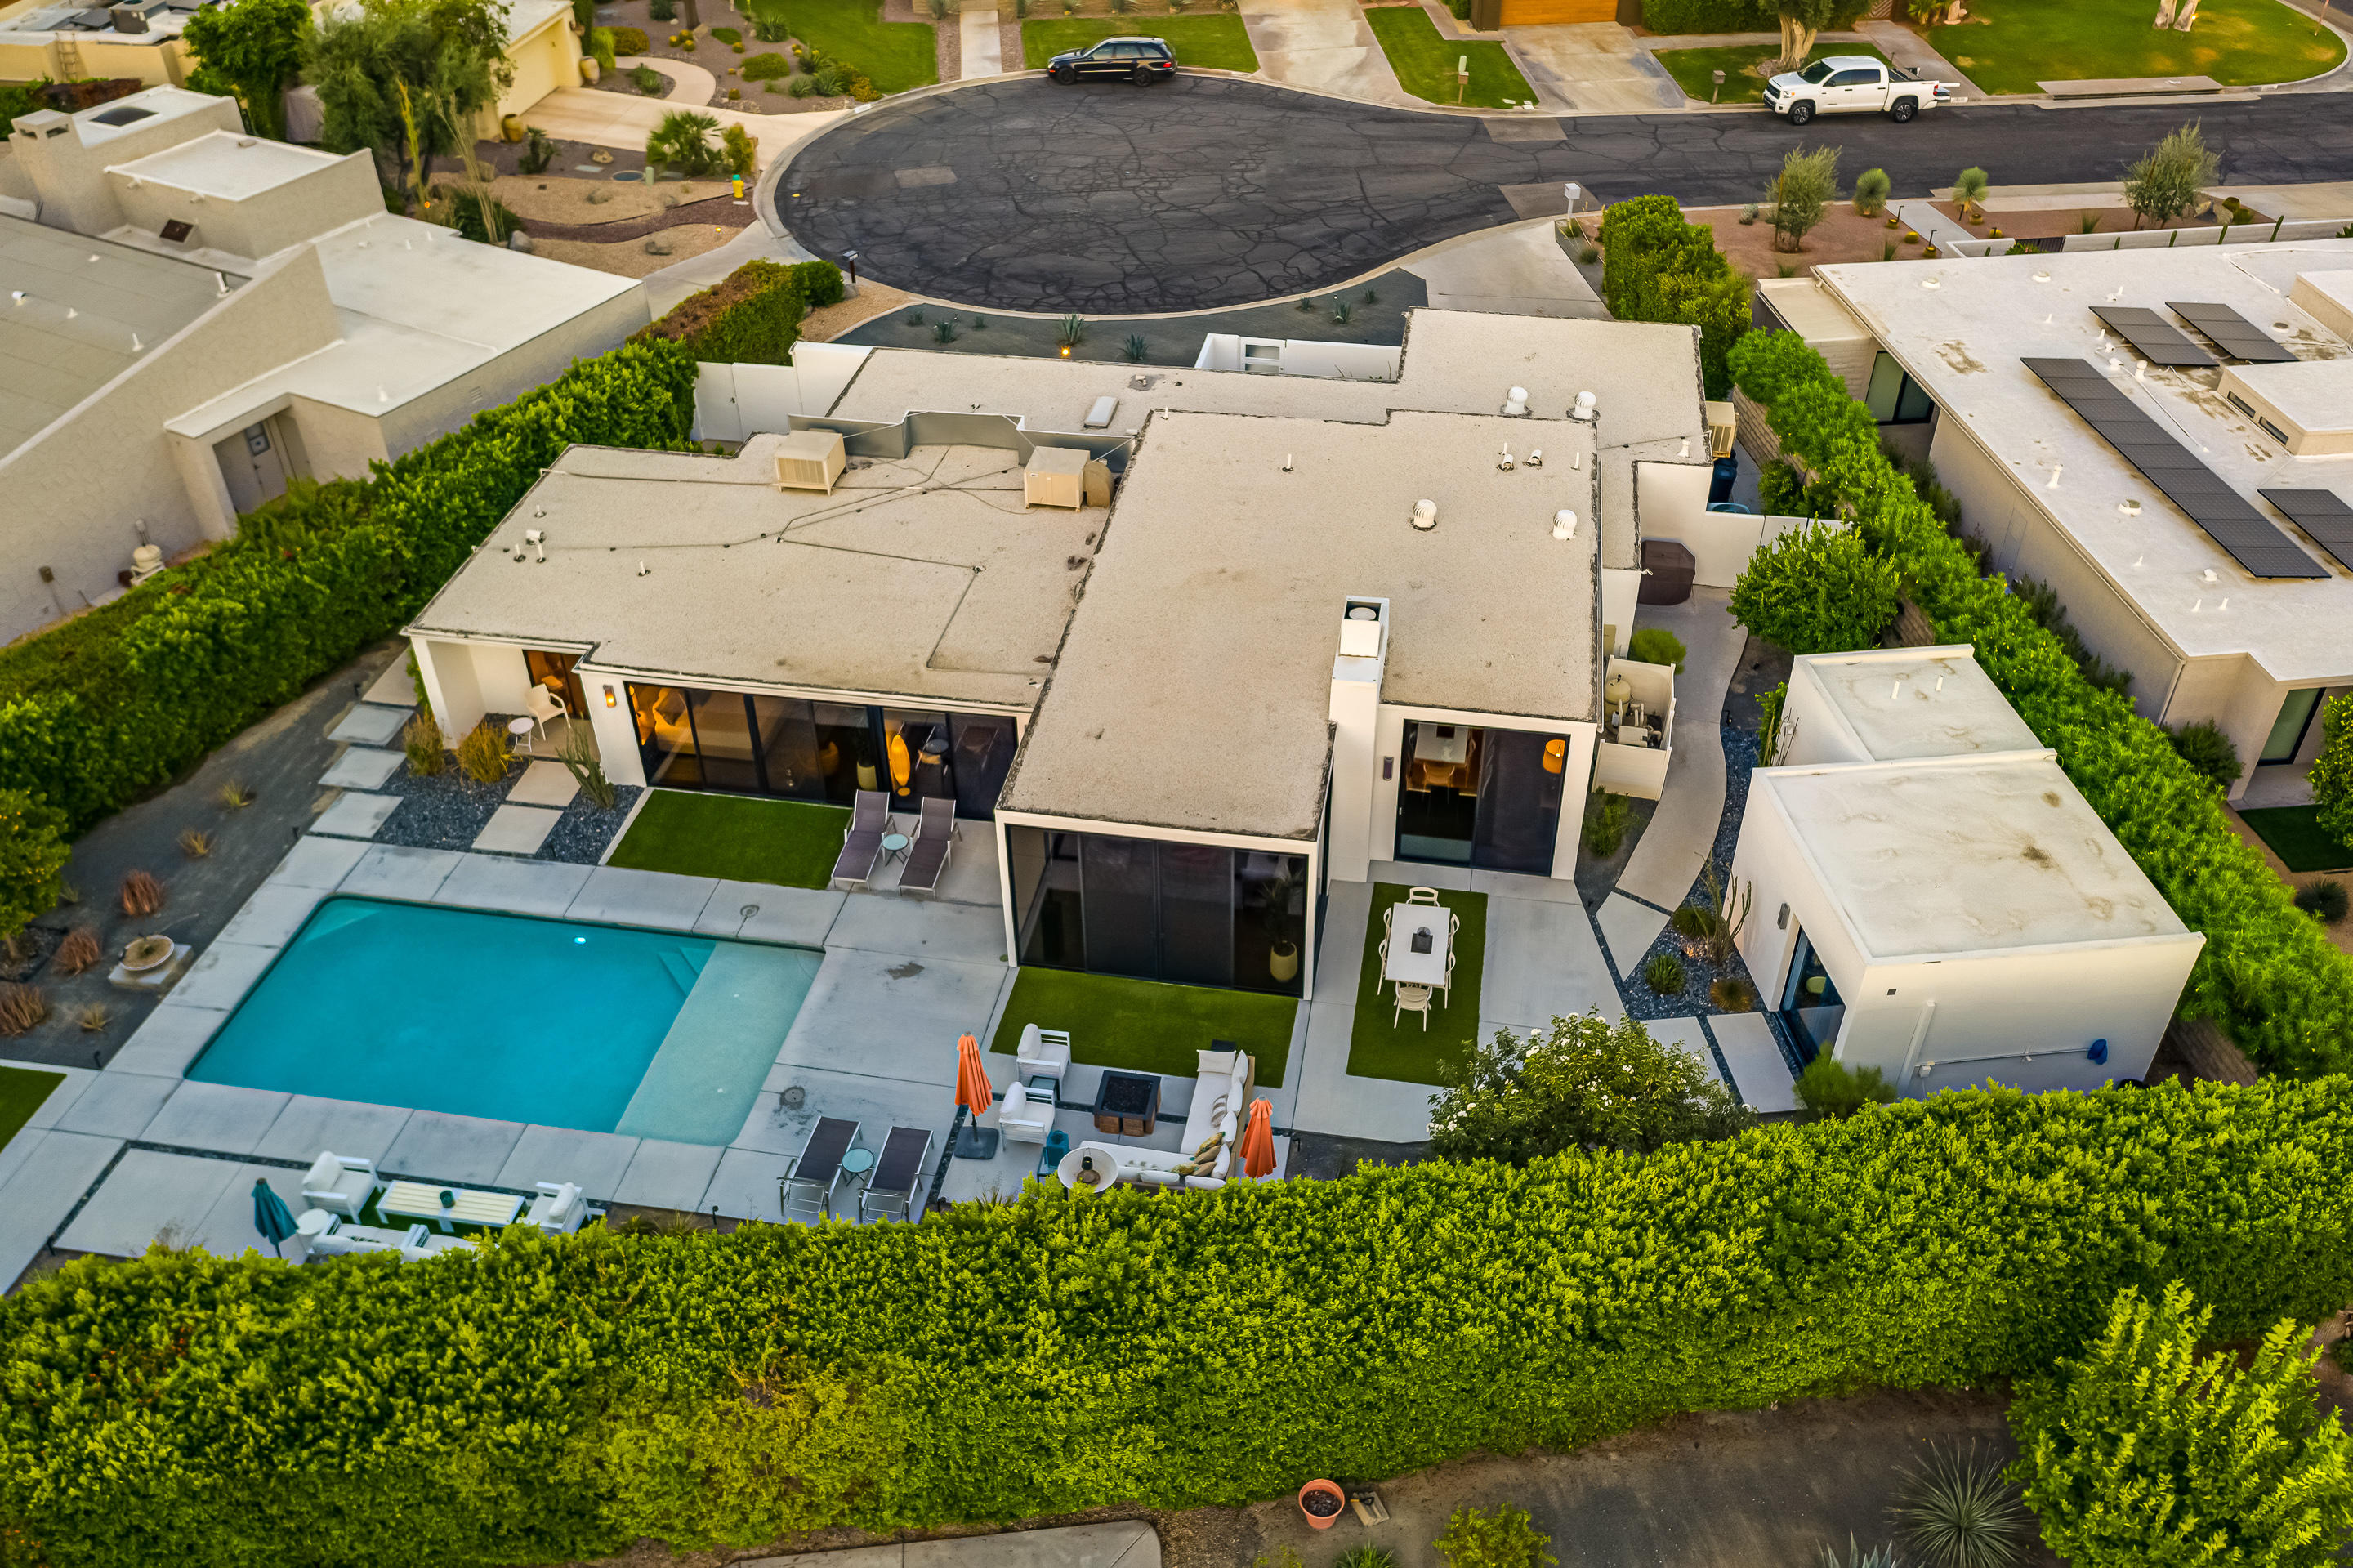 70570 Camellia Court, Rancho Mirage, California 92270, 4 Bedrooms Bedrooms, ,4 BathroomsBathrooms,Residential,For Sale,70570 Camellia Court,219044104